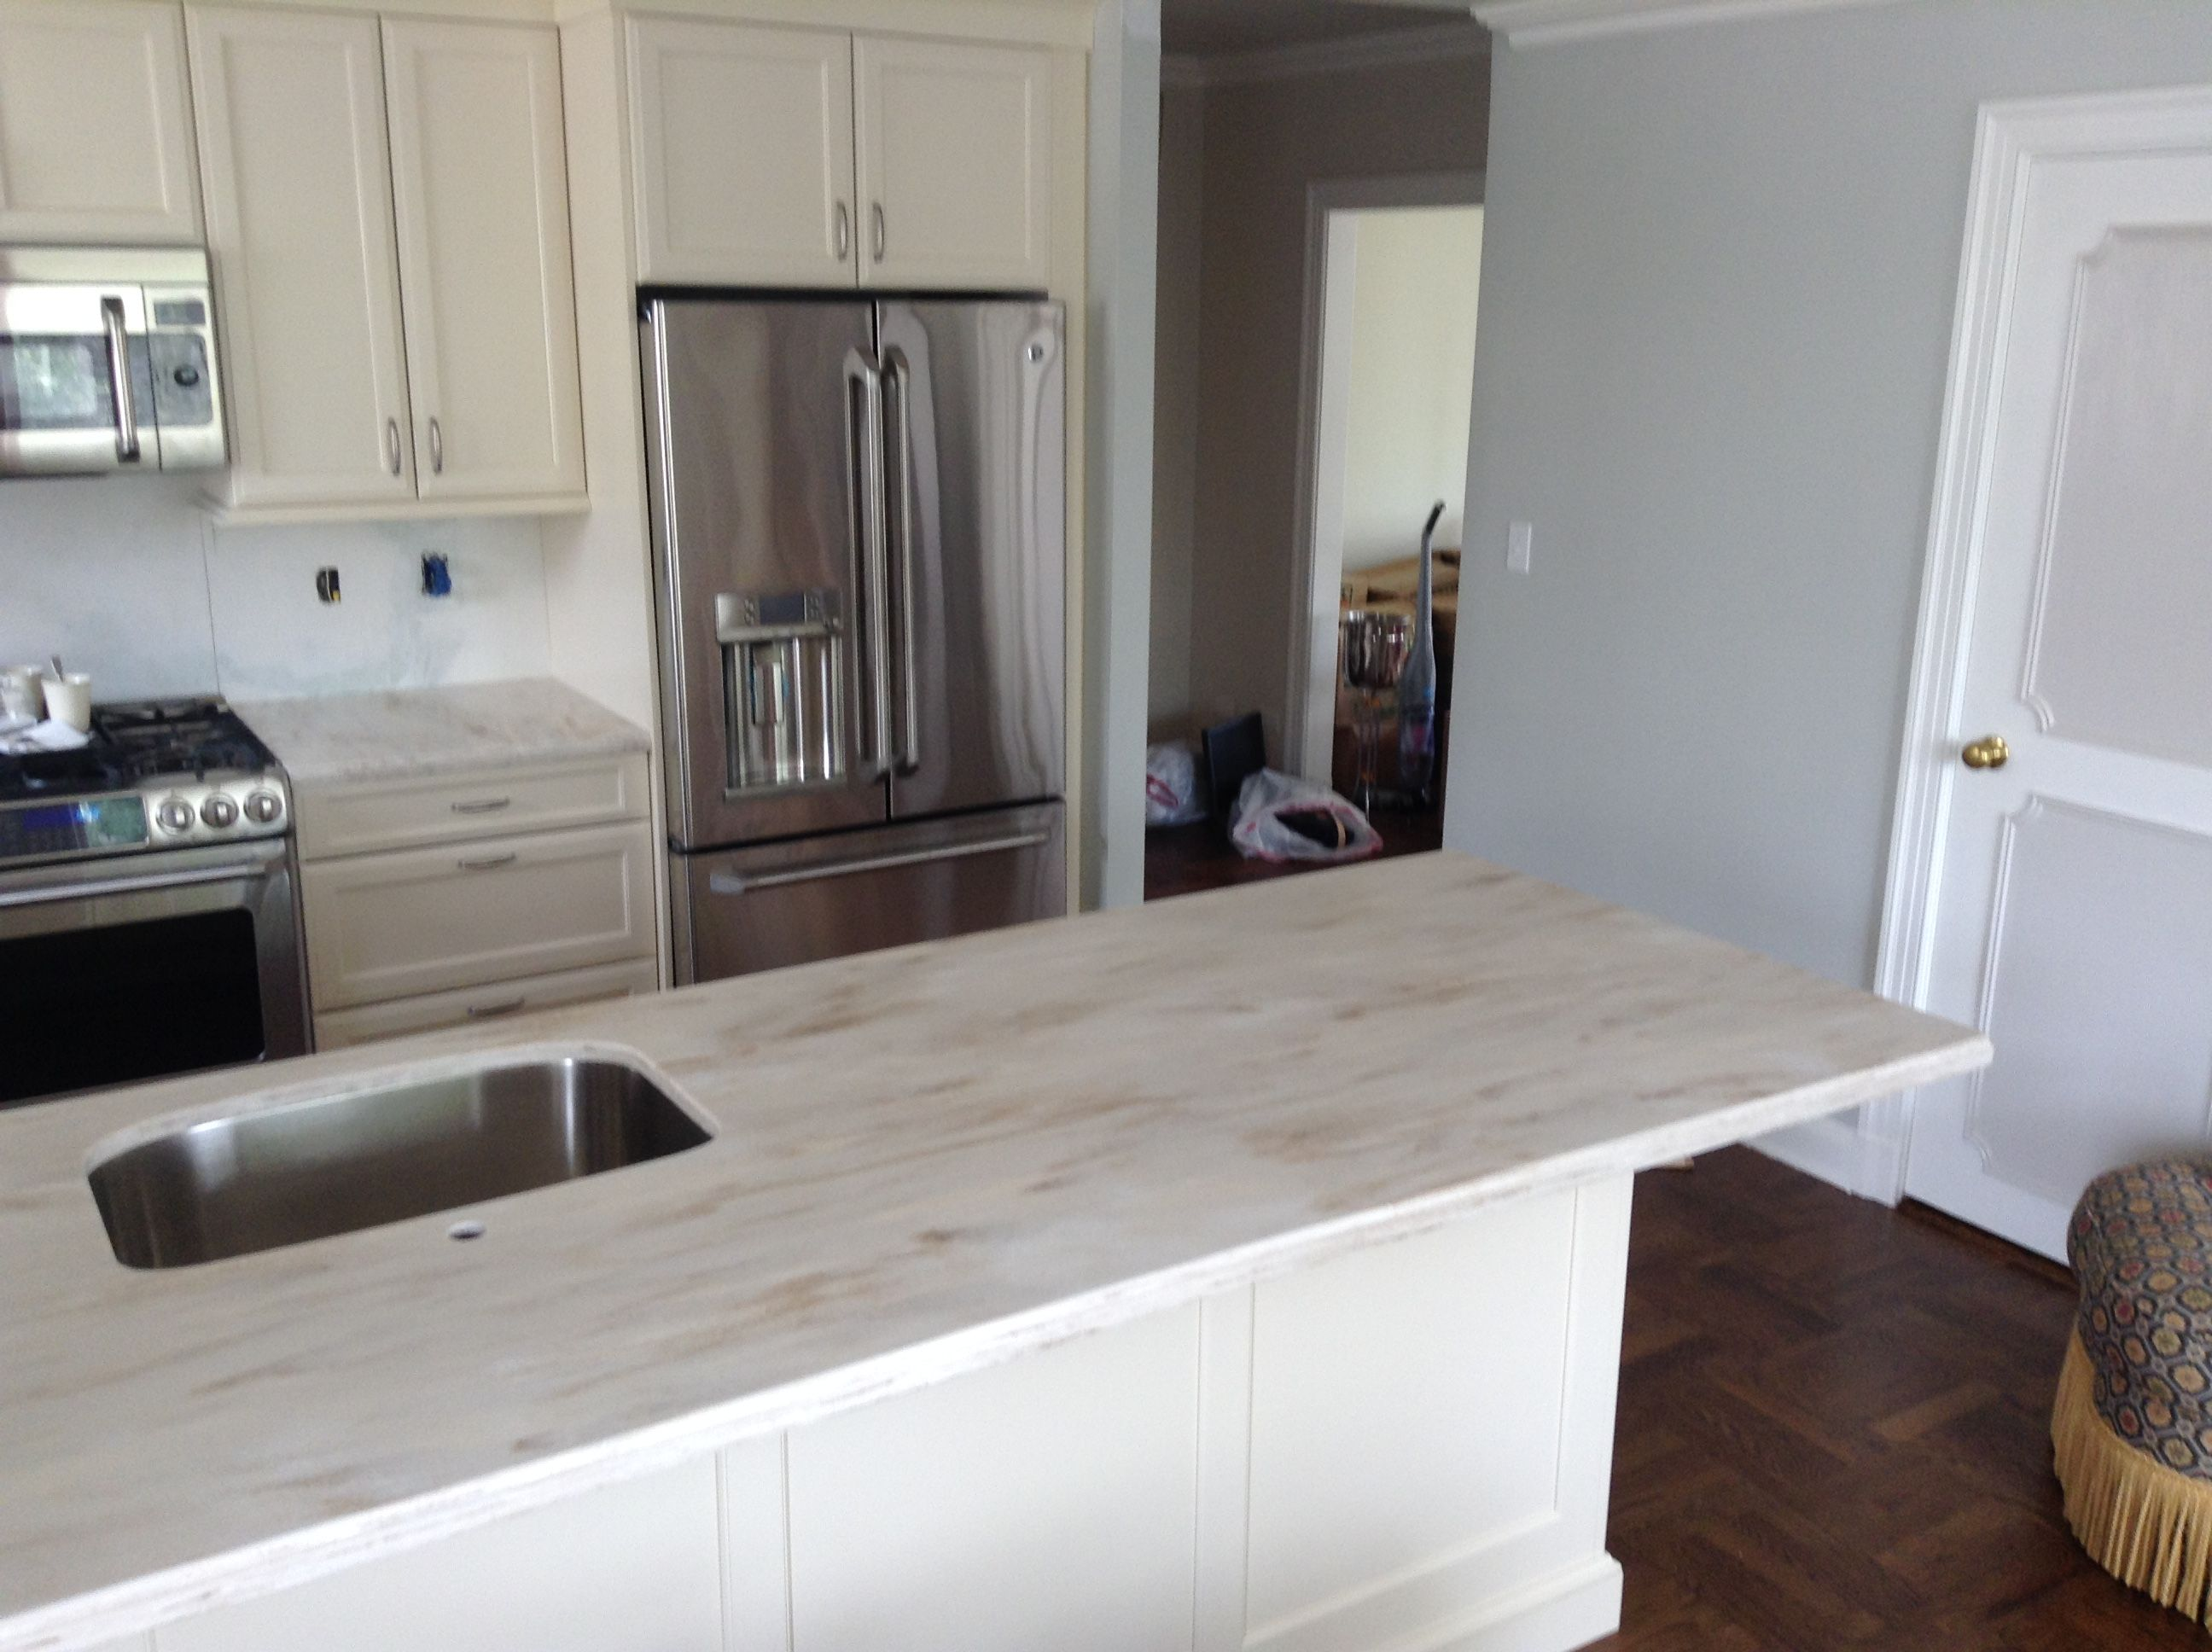 corian kitchen countertops Corian Clam Shell counters nice neutral color Kitchens Pinterest Countertops Kitchen colors and Backyards